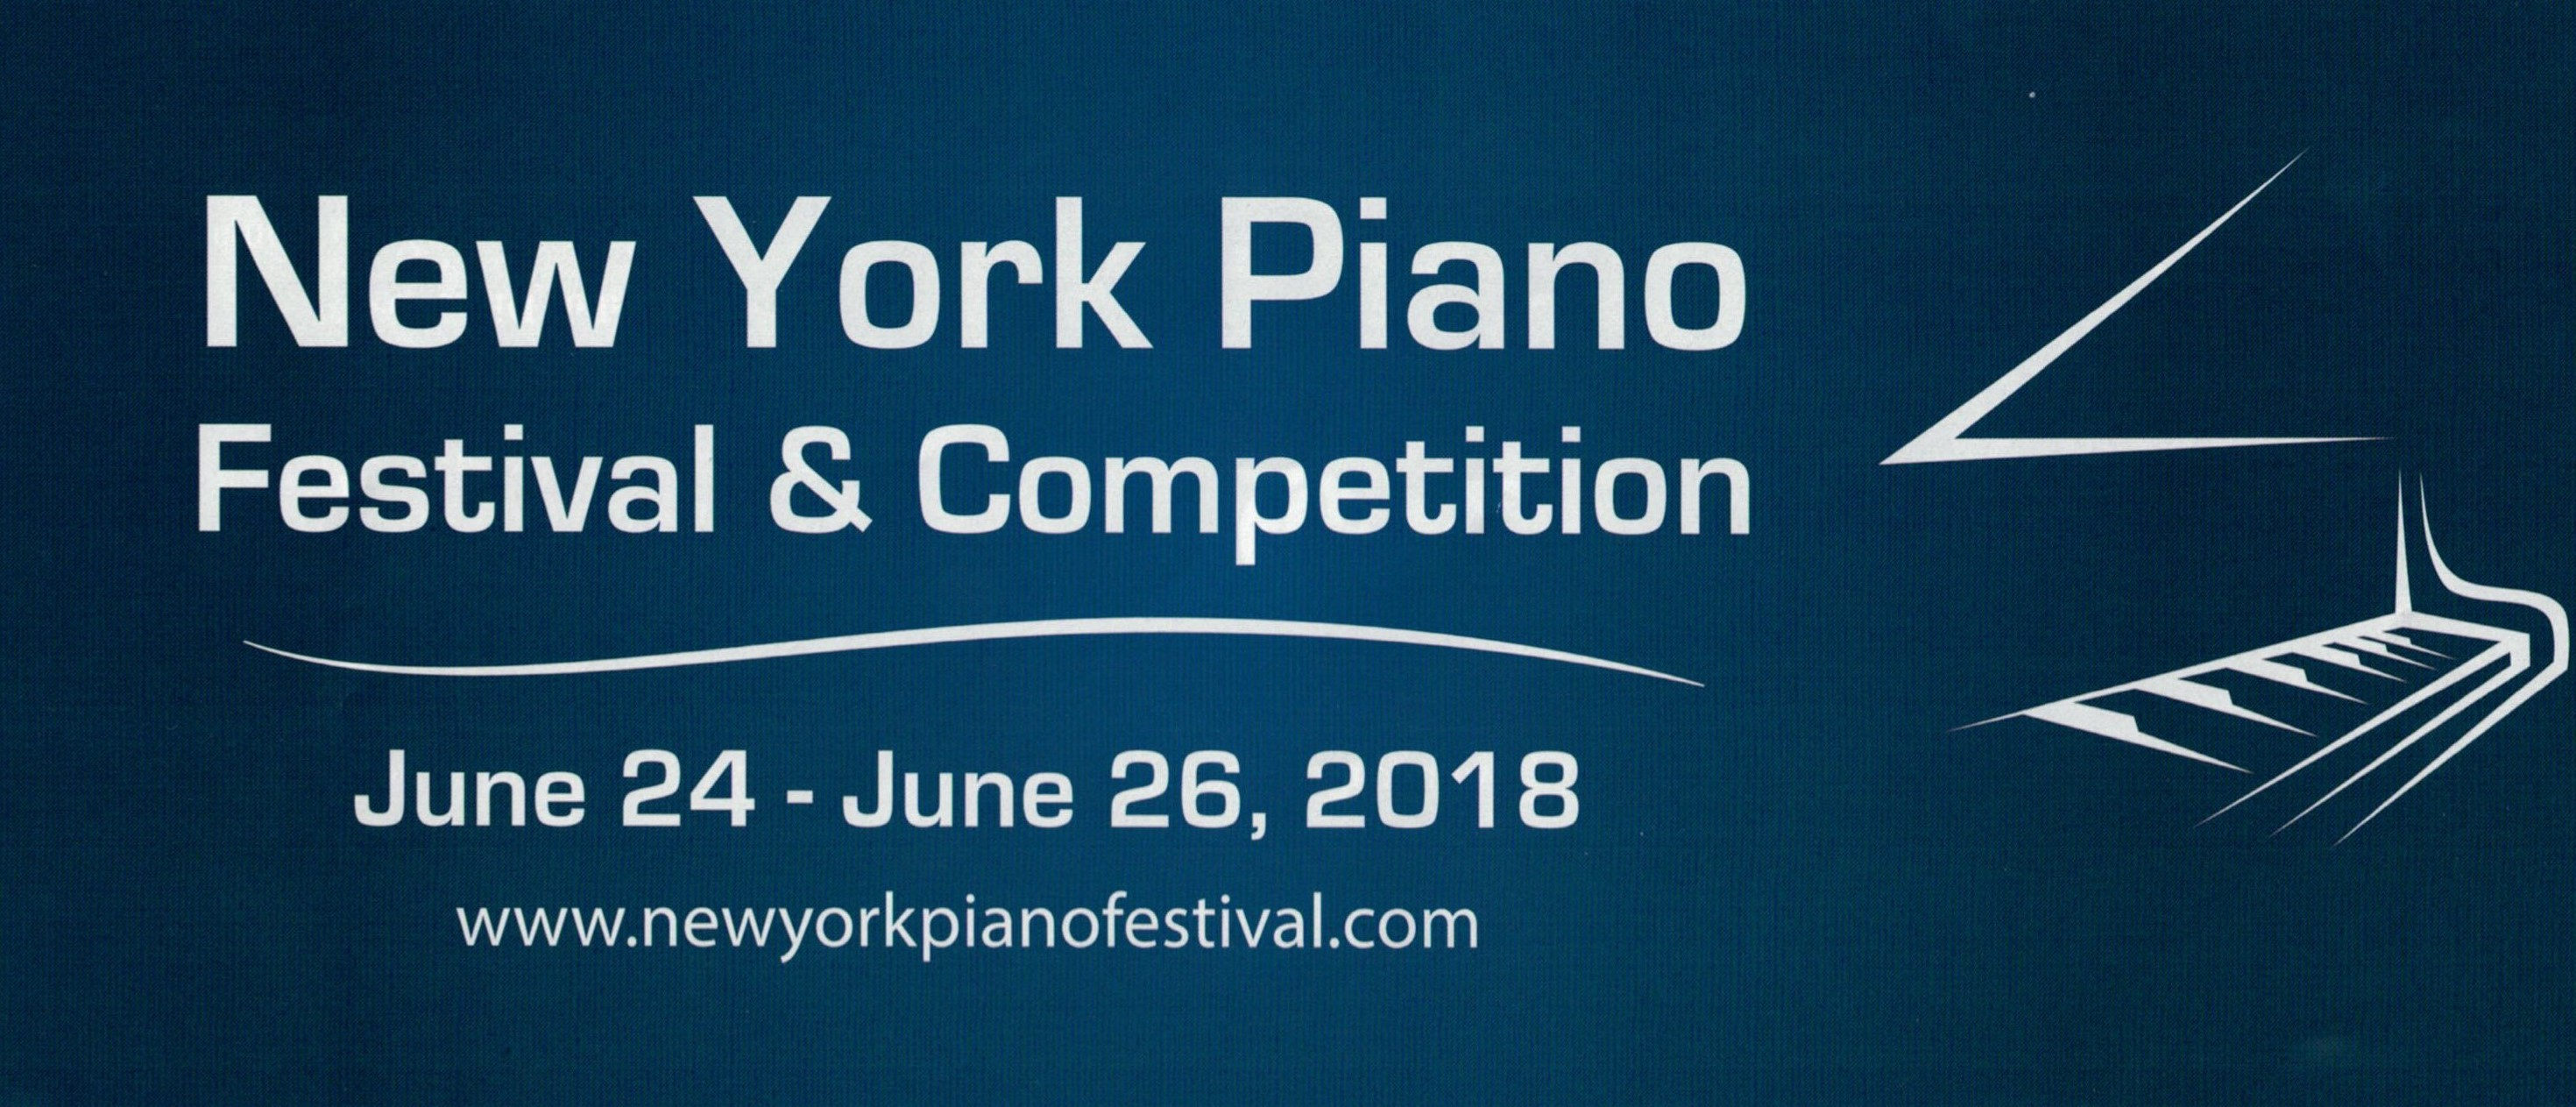 New York Piano Festival